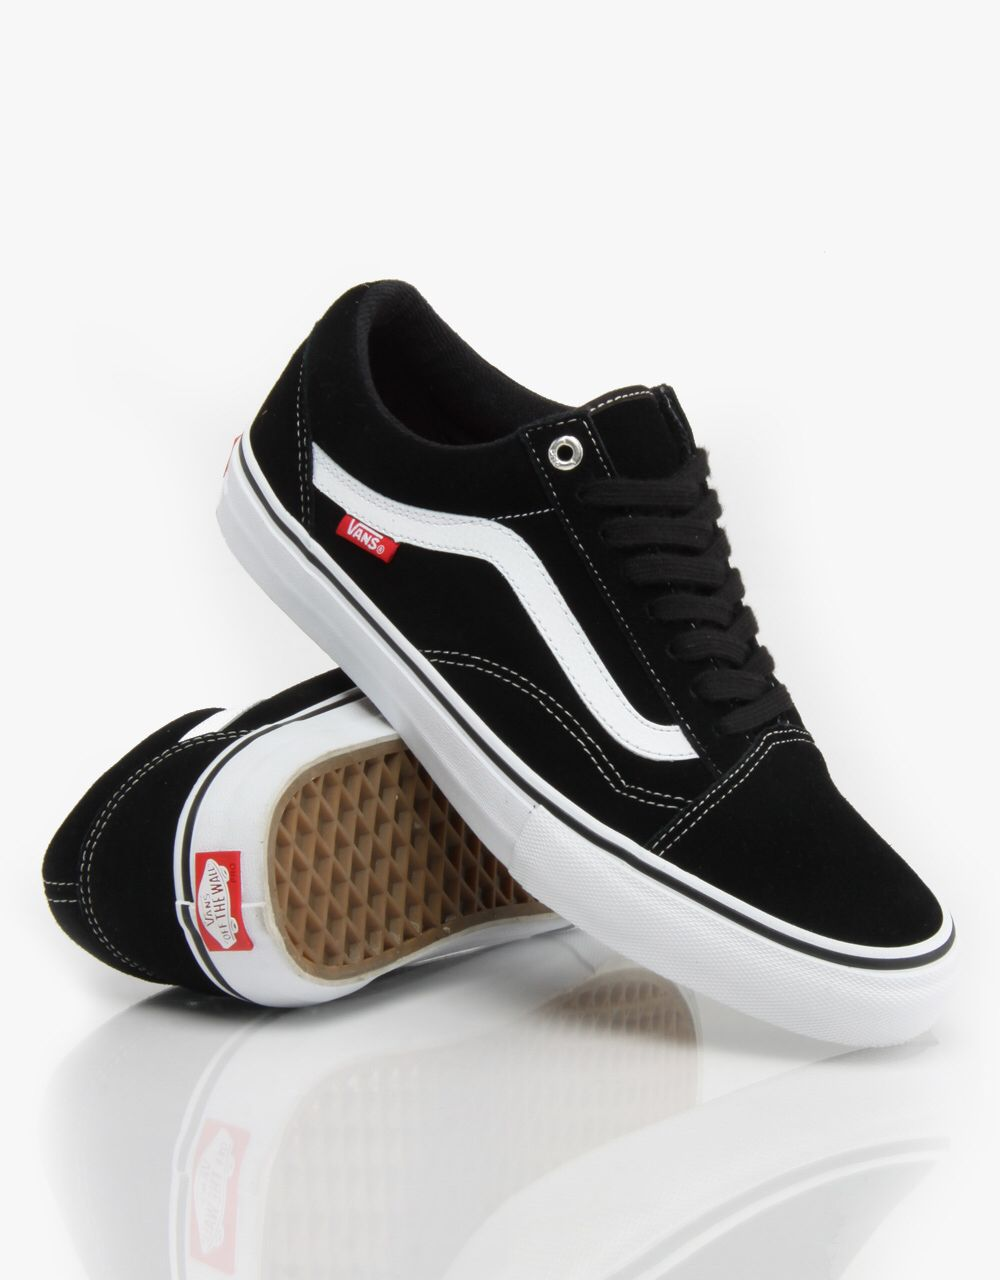 Vans old skool pro with black laces  090cbe426